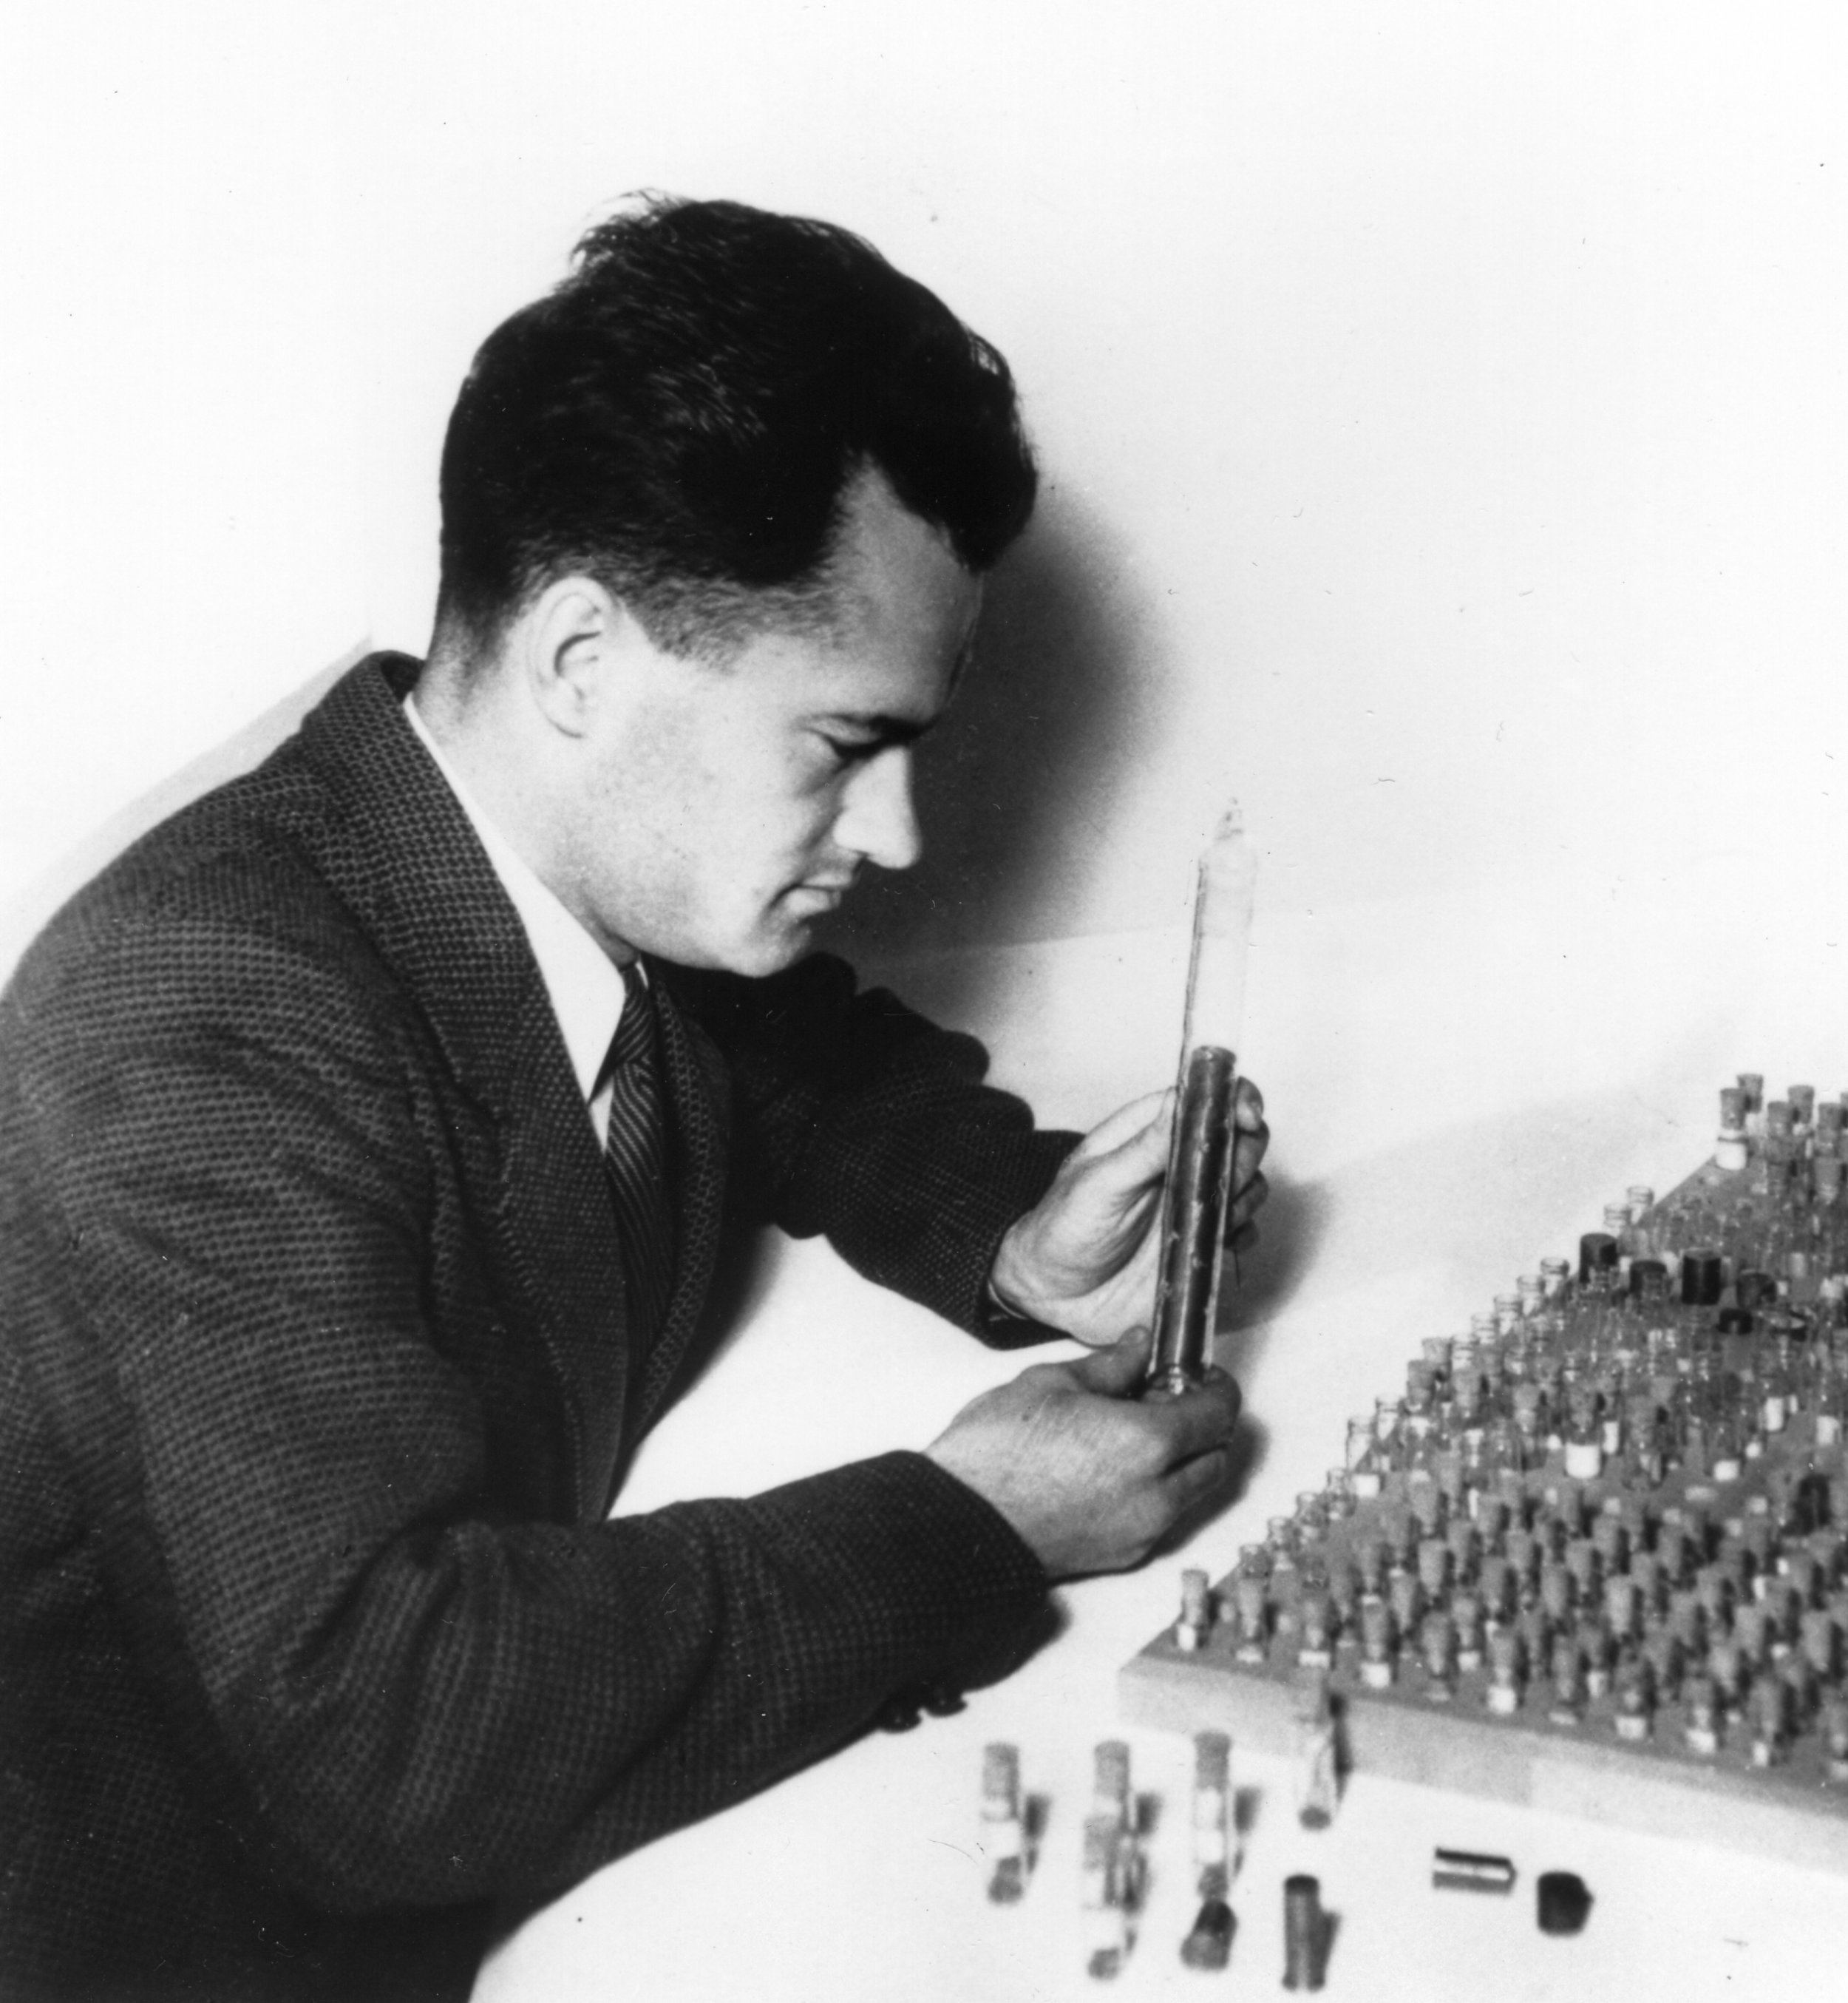 FIGURE 3.  Roman Smoluchowski, advocate for a metals division of the APS, works with alloy samples at General Electric. AIP Emilio Segrè Visual Archives, courtesy Roman Smoluchowski